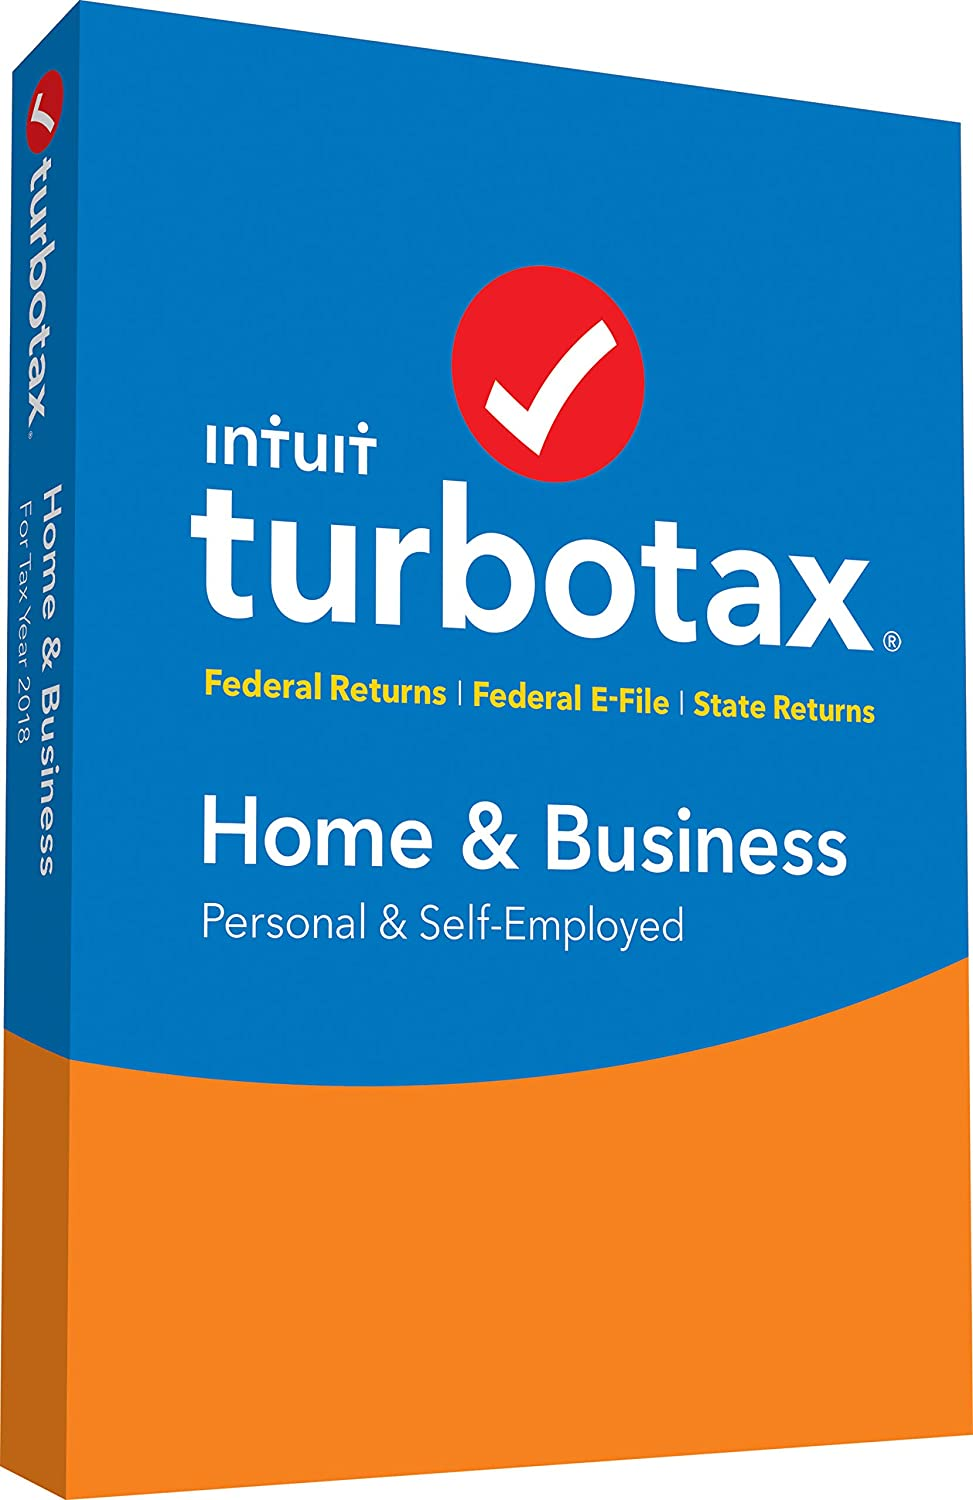 what is the price of TurboTax 2009 Home & Business